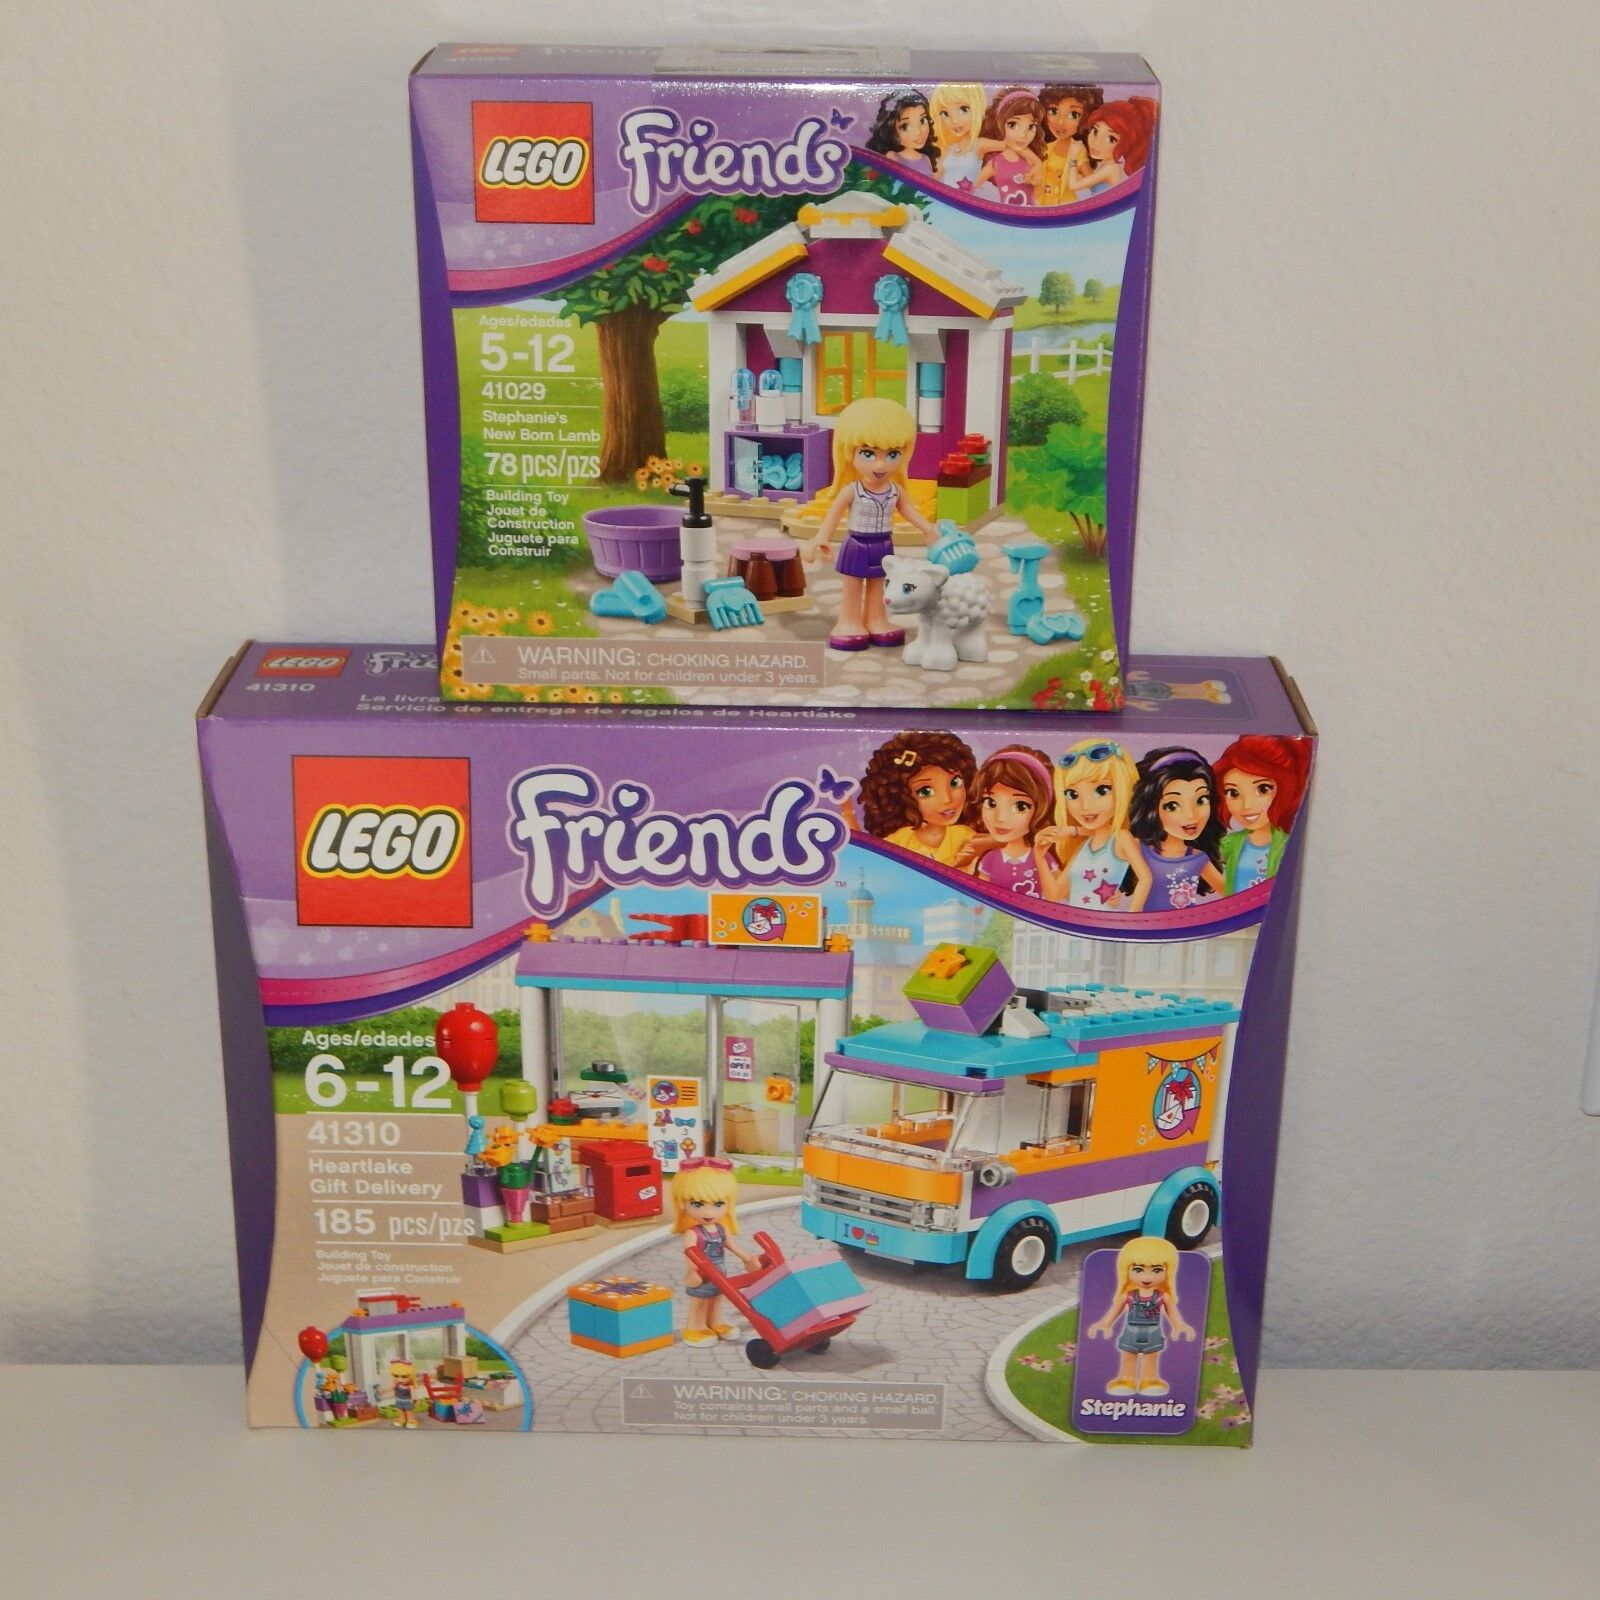 LEGO Friends 41310 Heartlake Gift Delivery & 41029 Stephanie